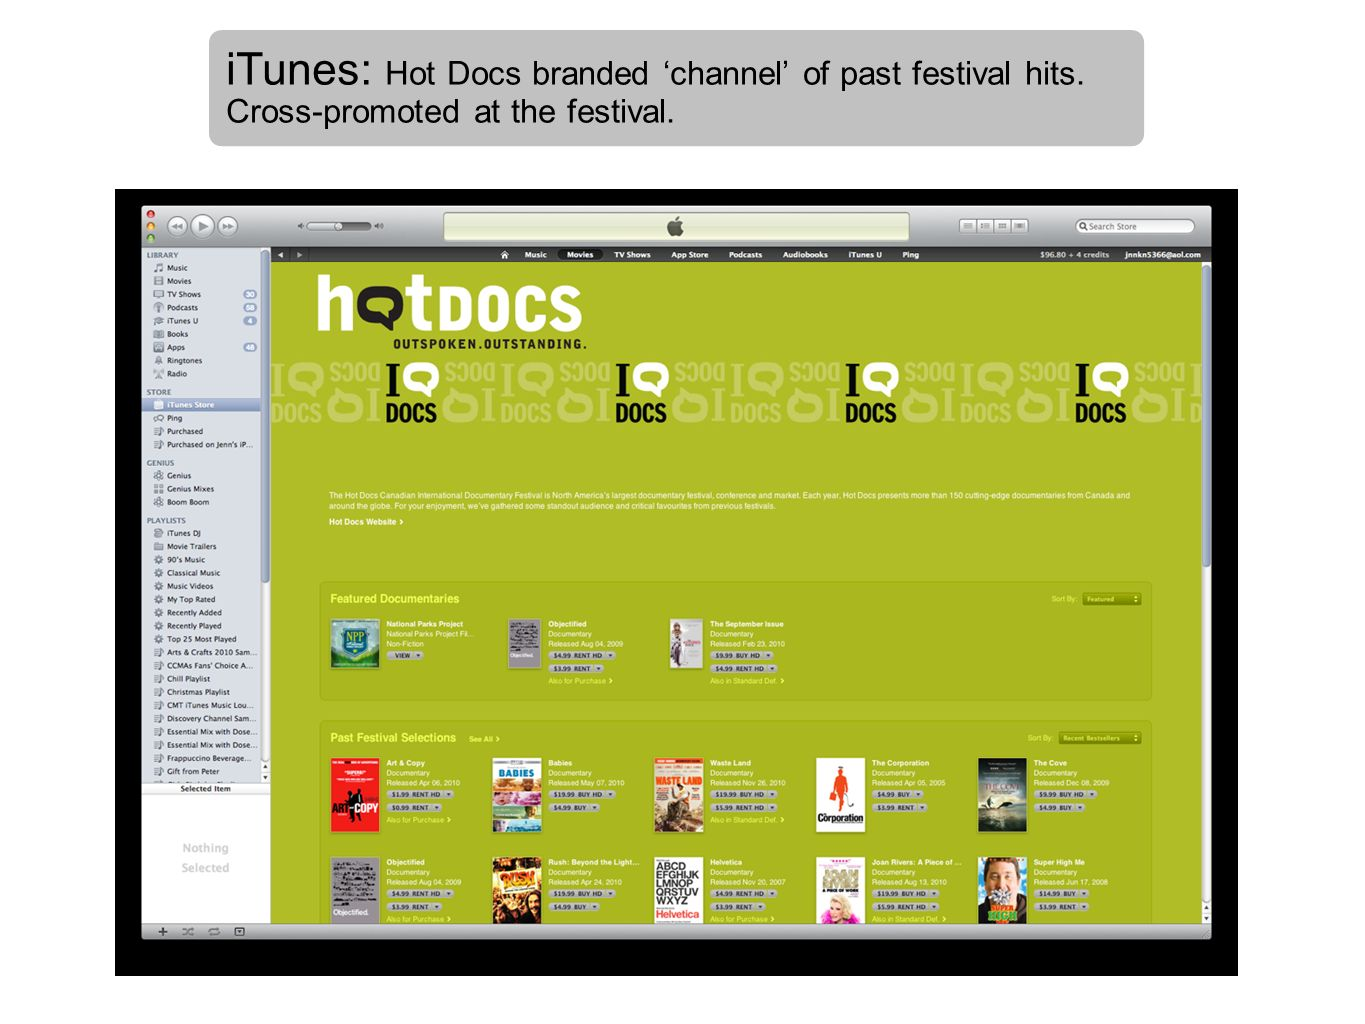 iTunes: Hot Docs branded 'channel' of past festival hits